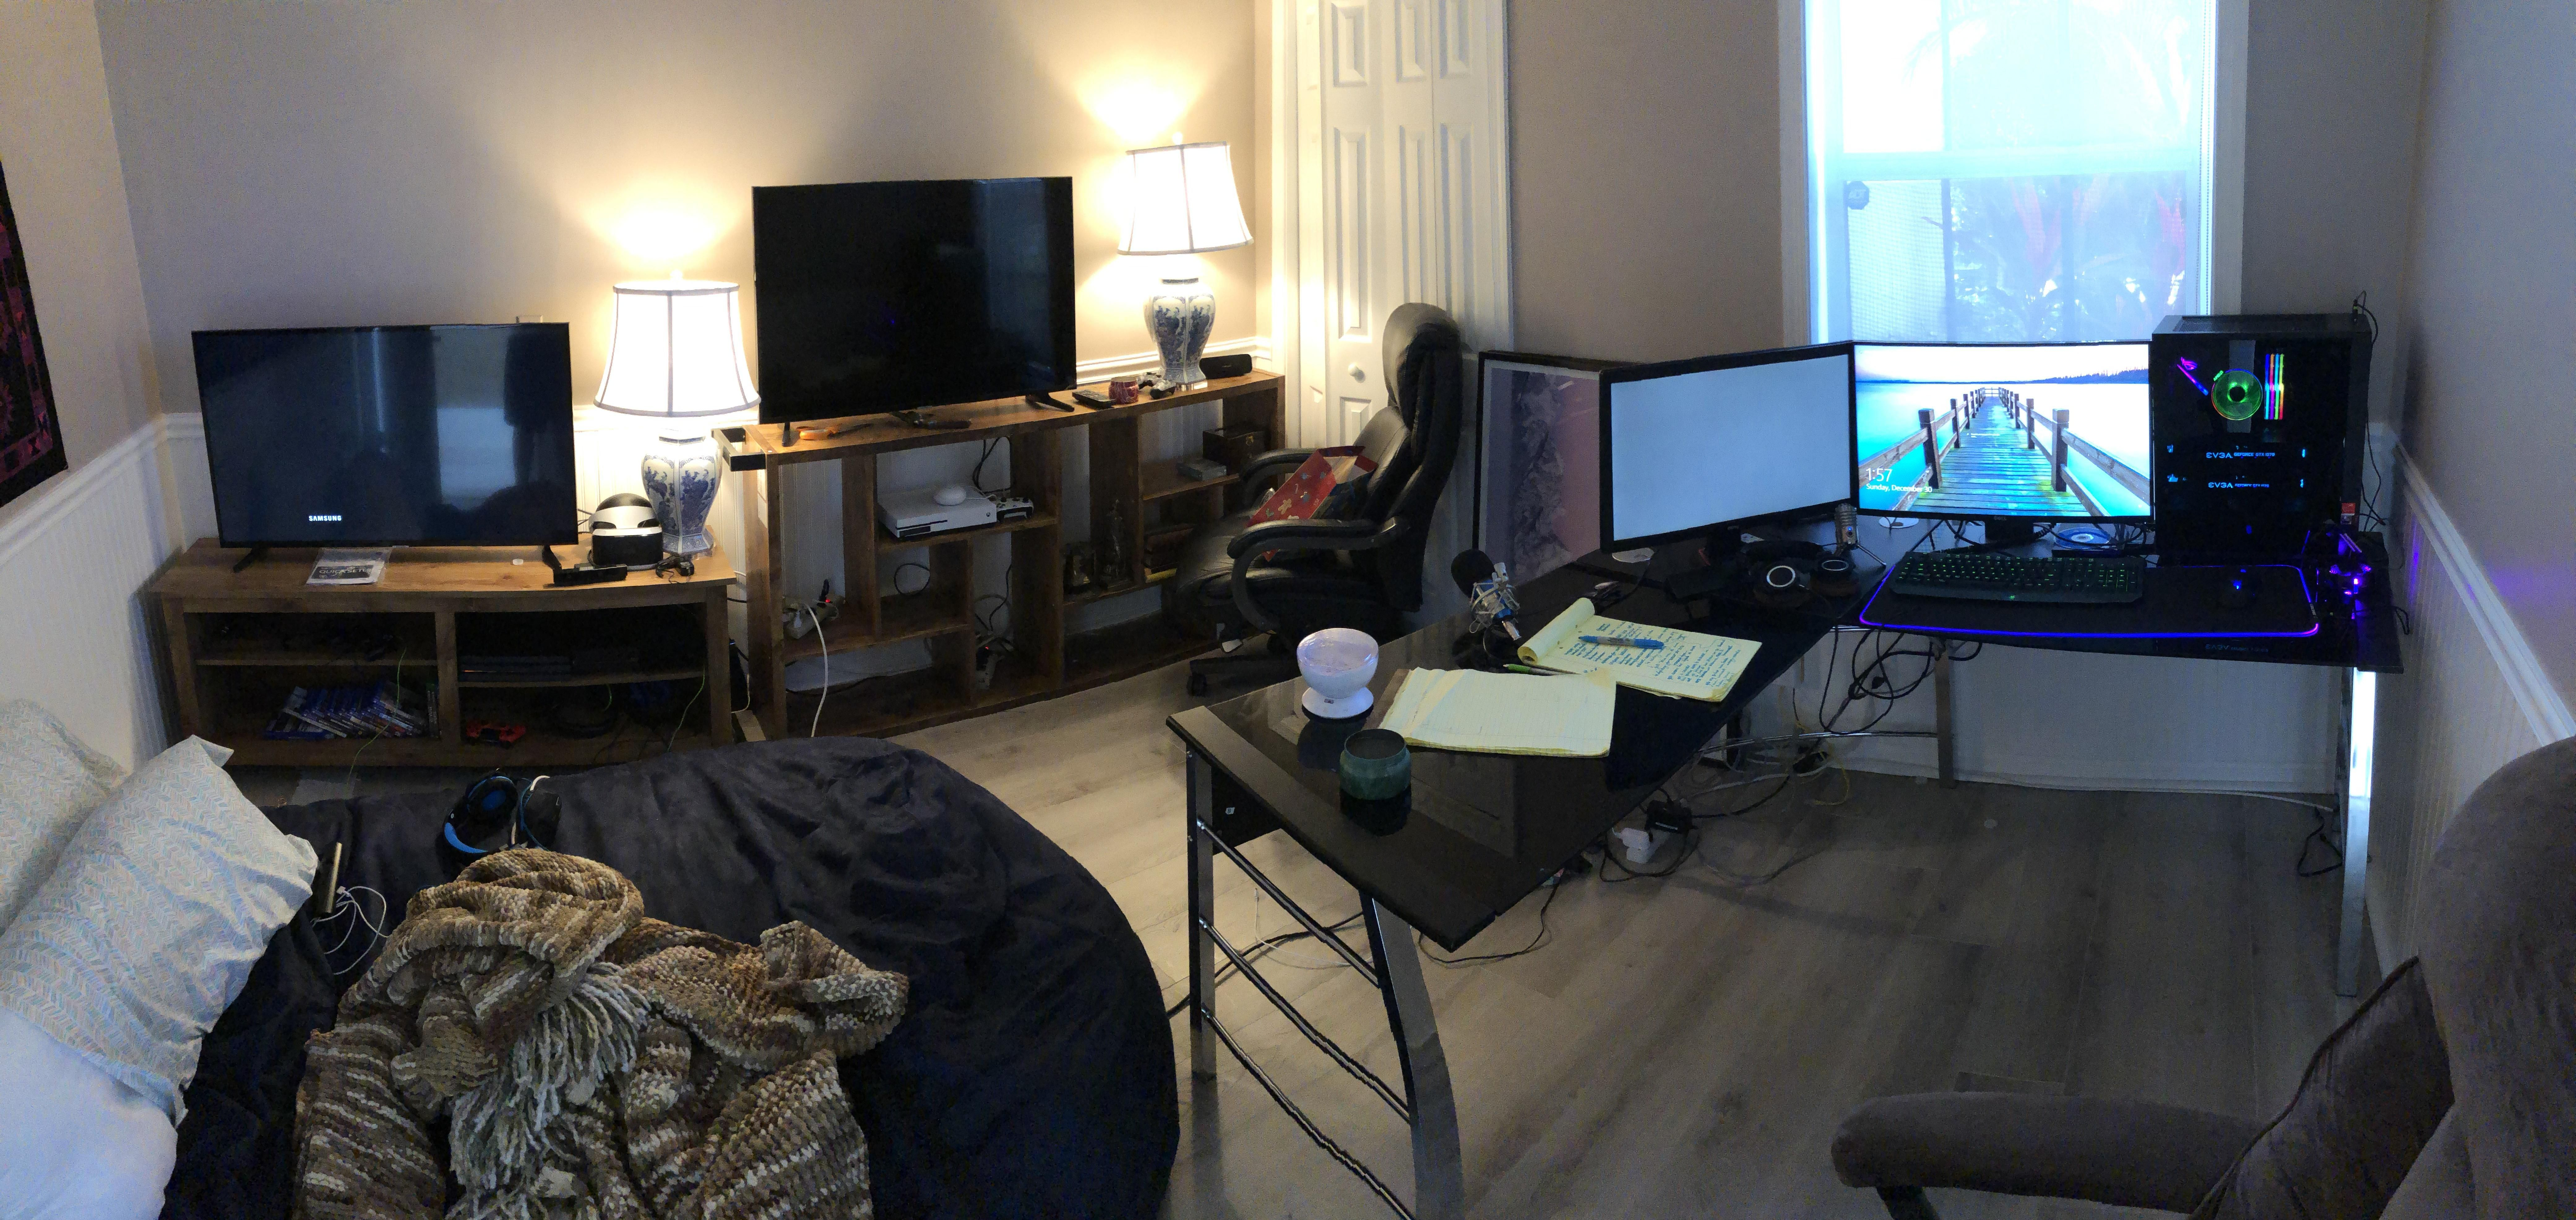 Setting Up My First Gaming Room Just Finished My Pc Build And Got Two Tvs For The Xboxs Its Coming Along Nicely Any Suggestions Game Room Room Home Decor #pc #for #living #room